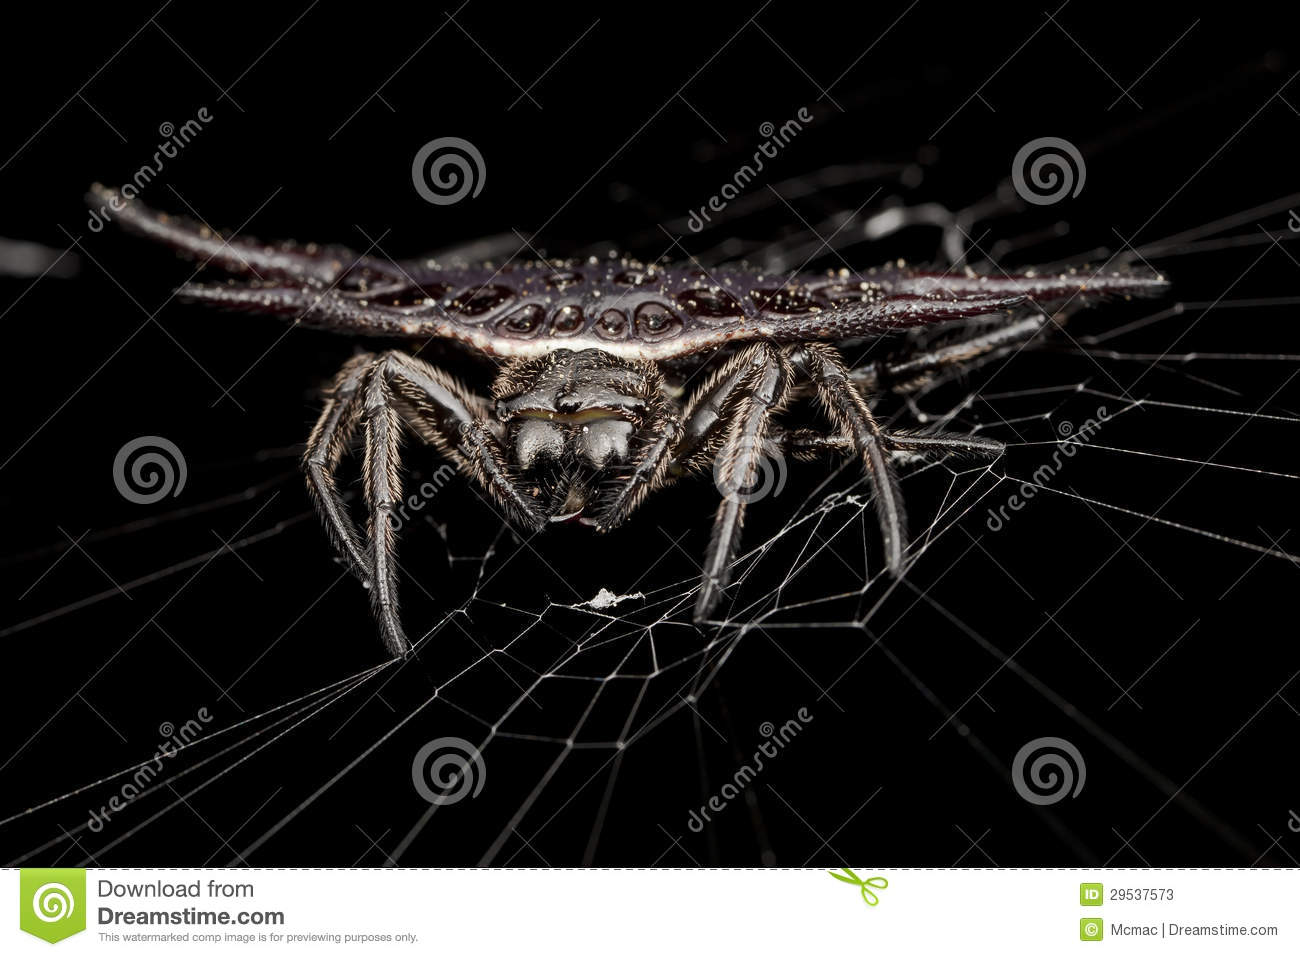 Spiny Orb Weaver clipart #4, Download drawings